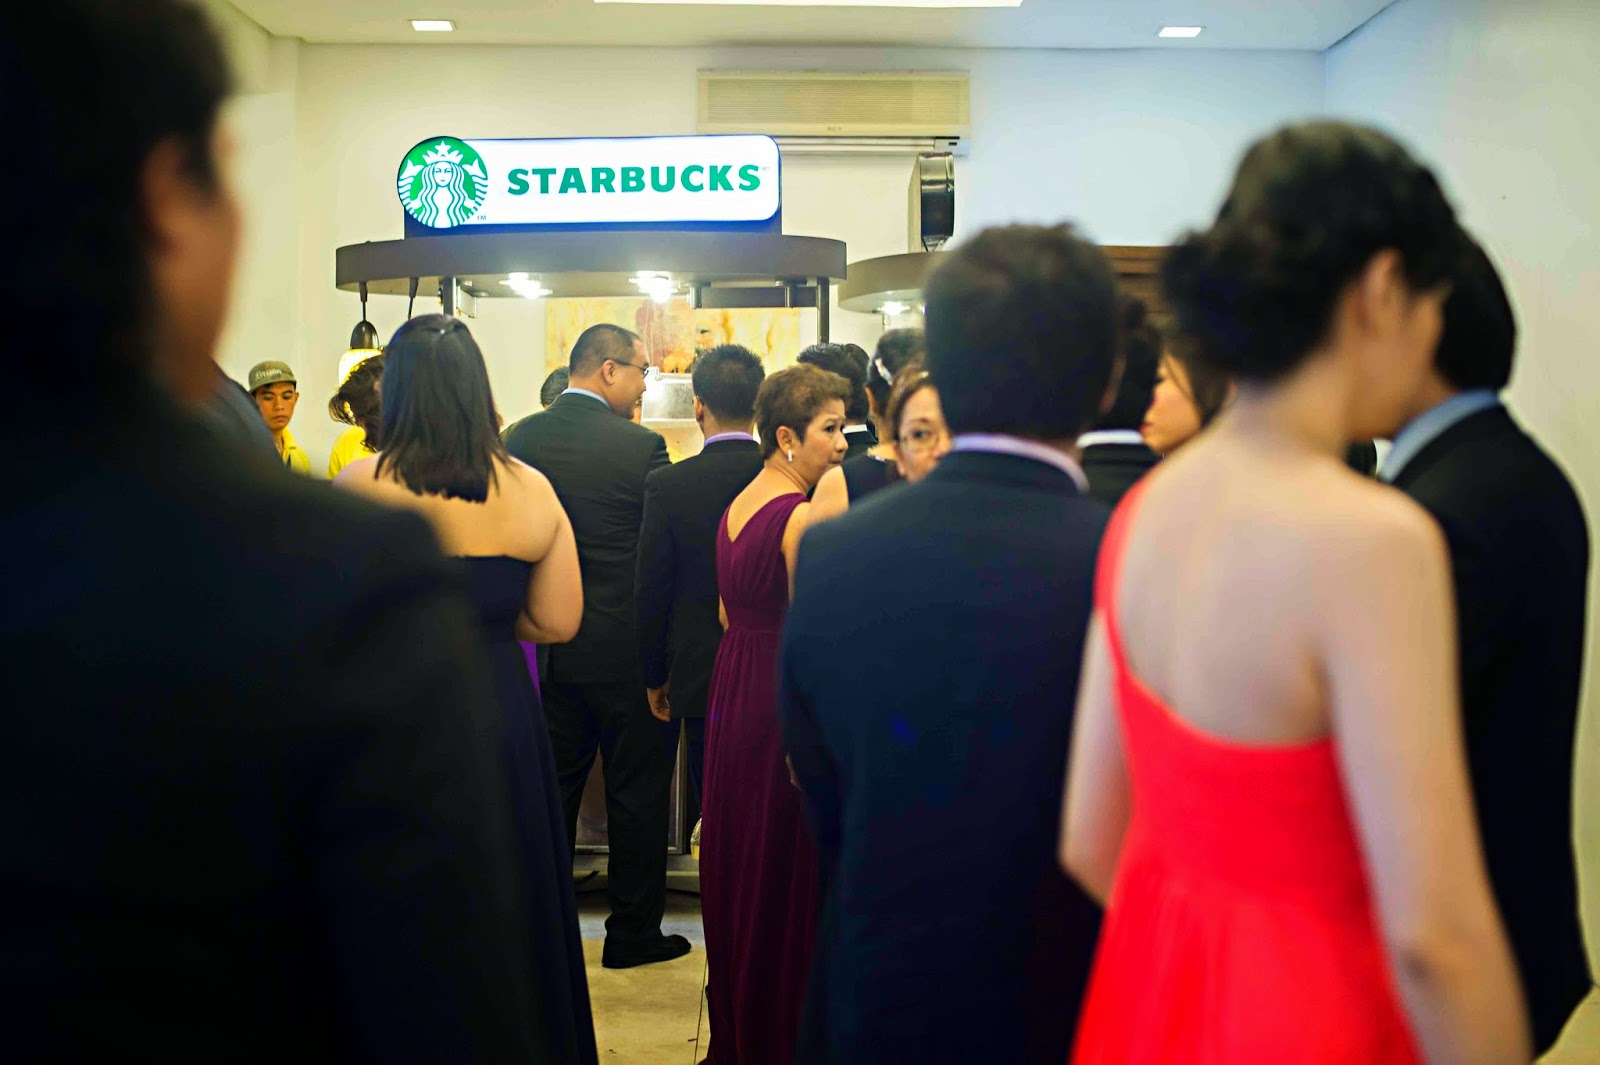 Starbucks Booth Line